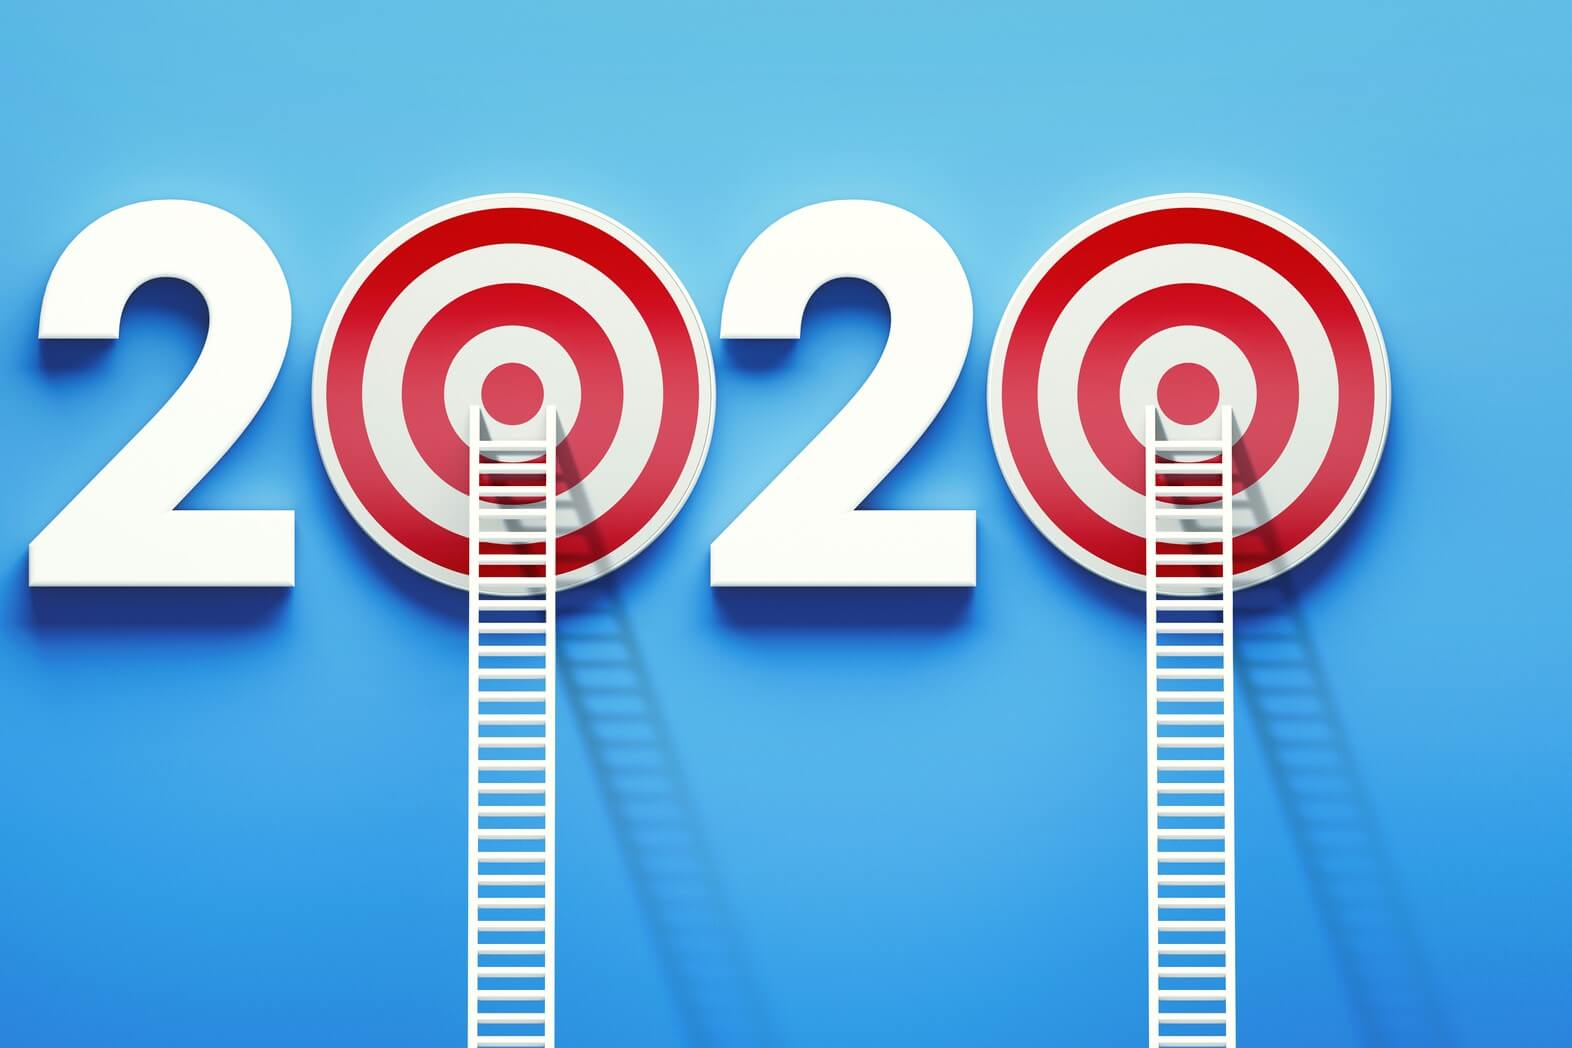 Altcoin Trader crypto 2020: institutions to pick bitcoin, retail to stay in